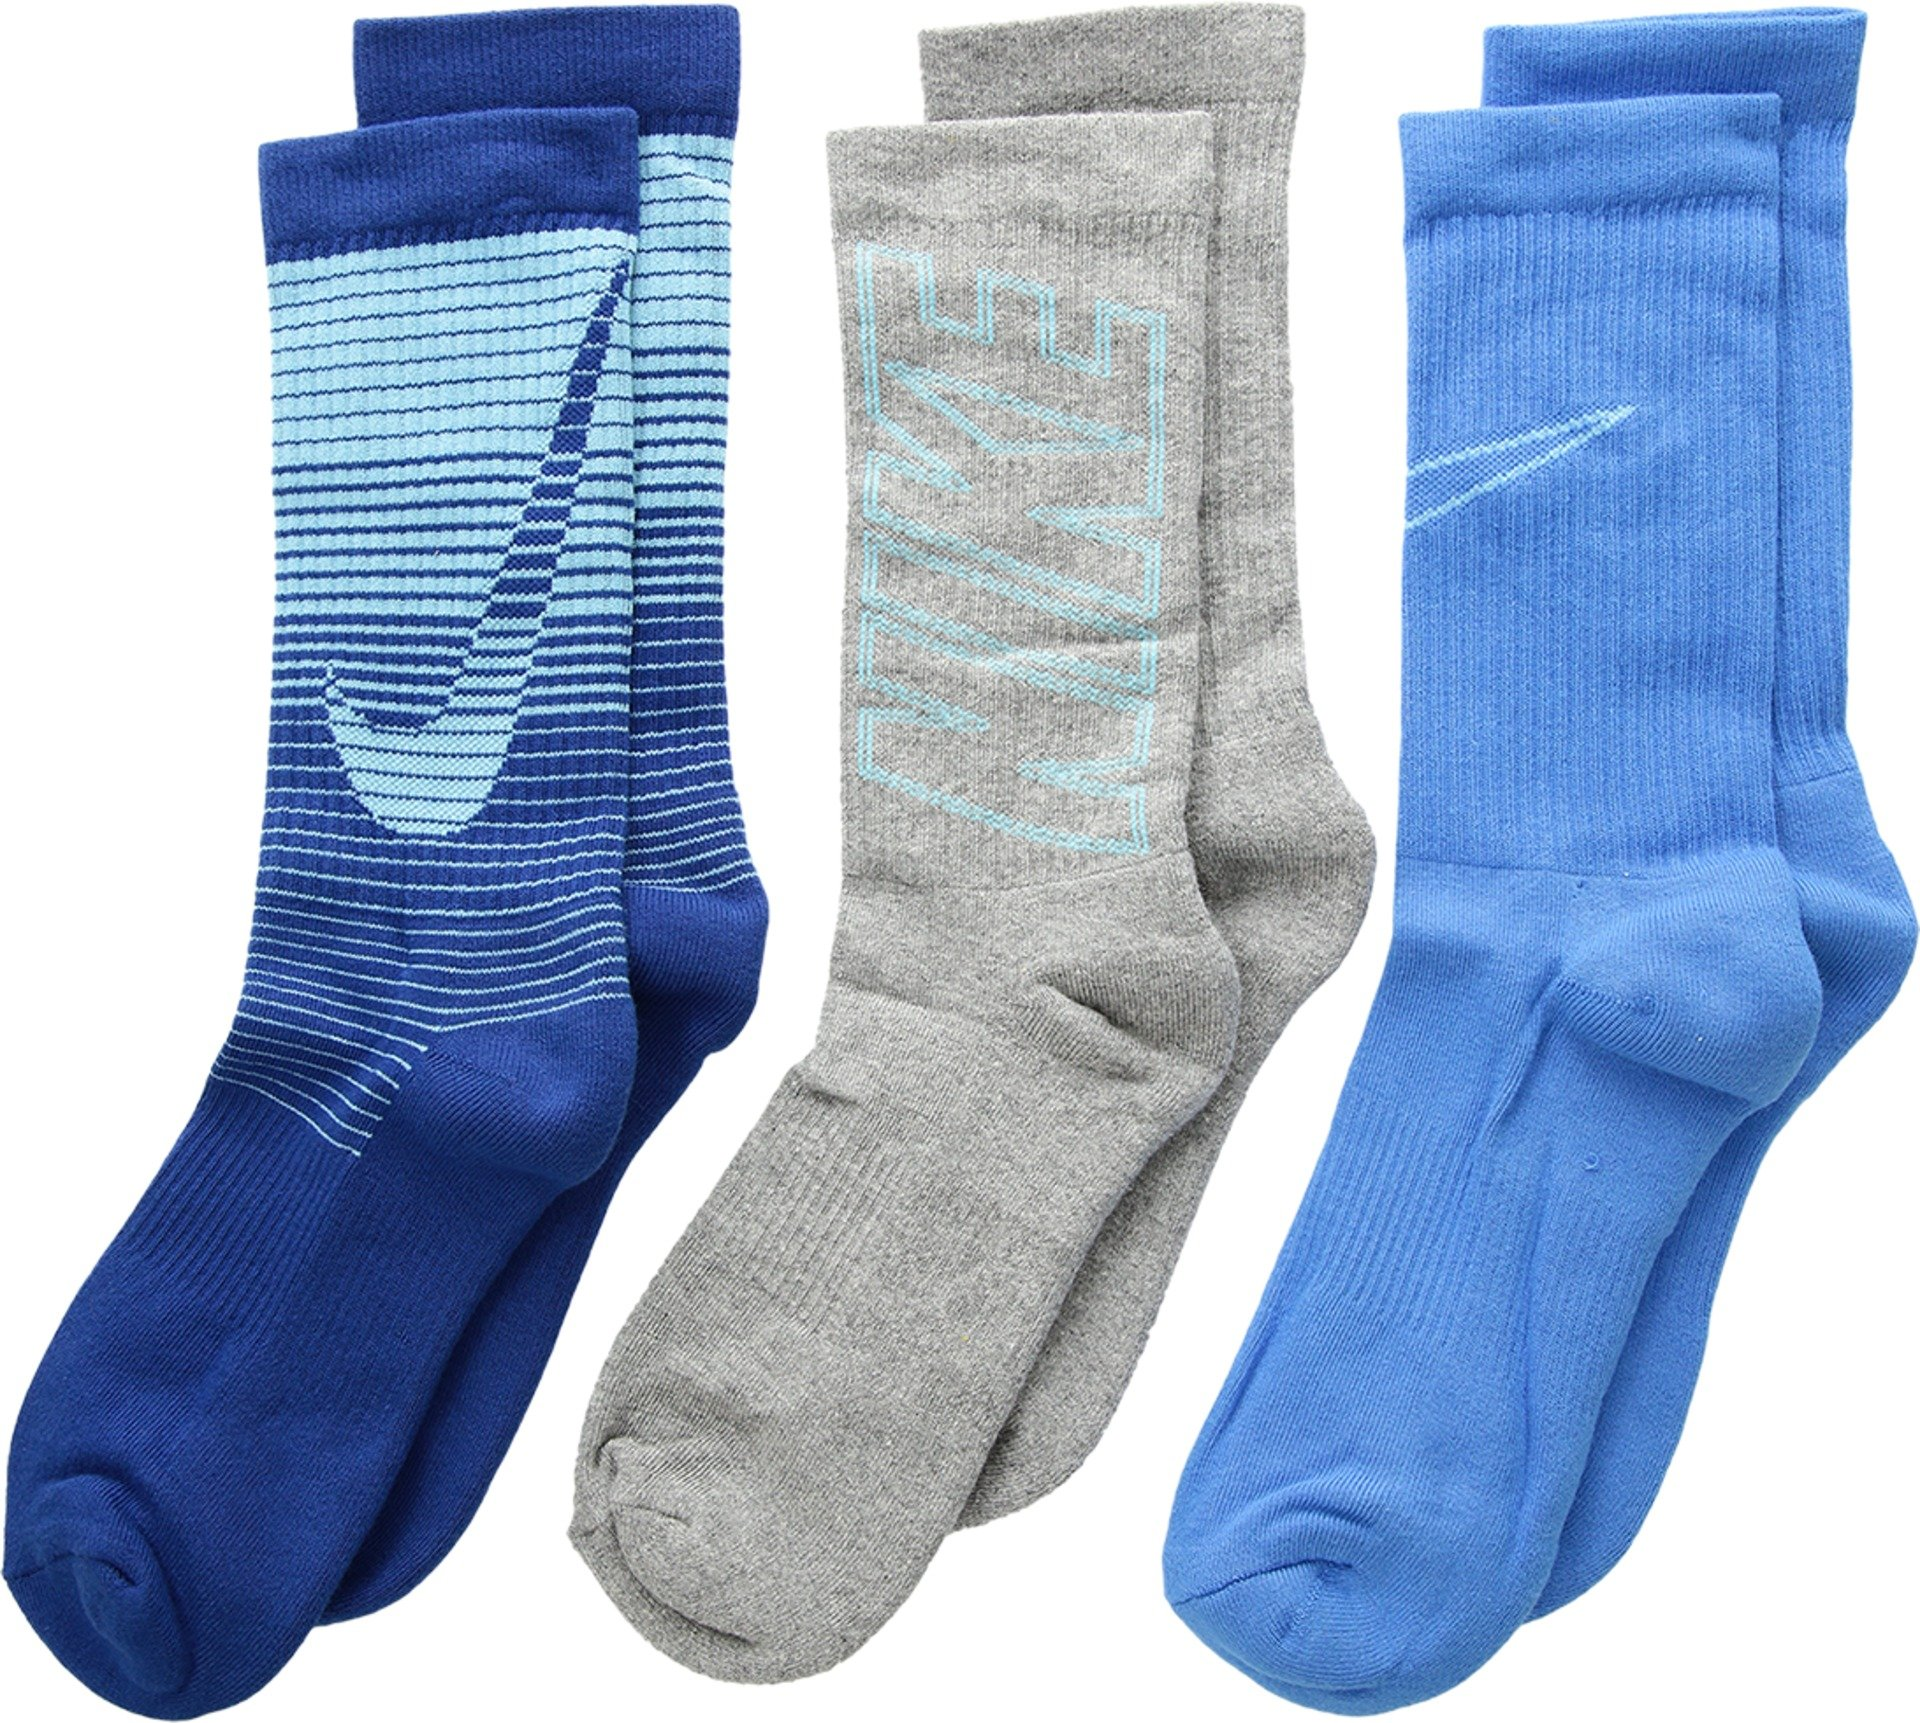 Nike 3 Pack Performance Cushion Socks- Boys' Young Athletes 3Y-5Y/7-9 (Sock Size)